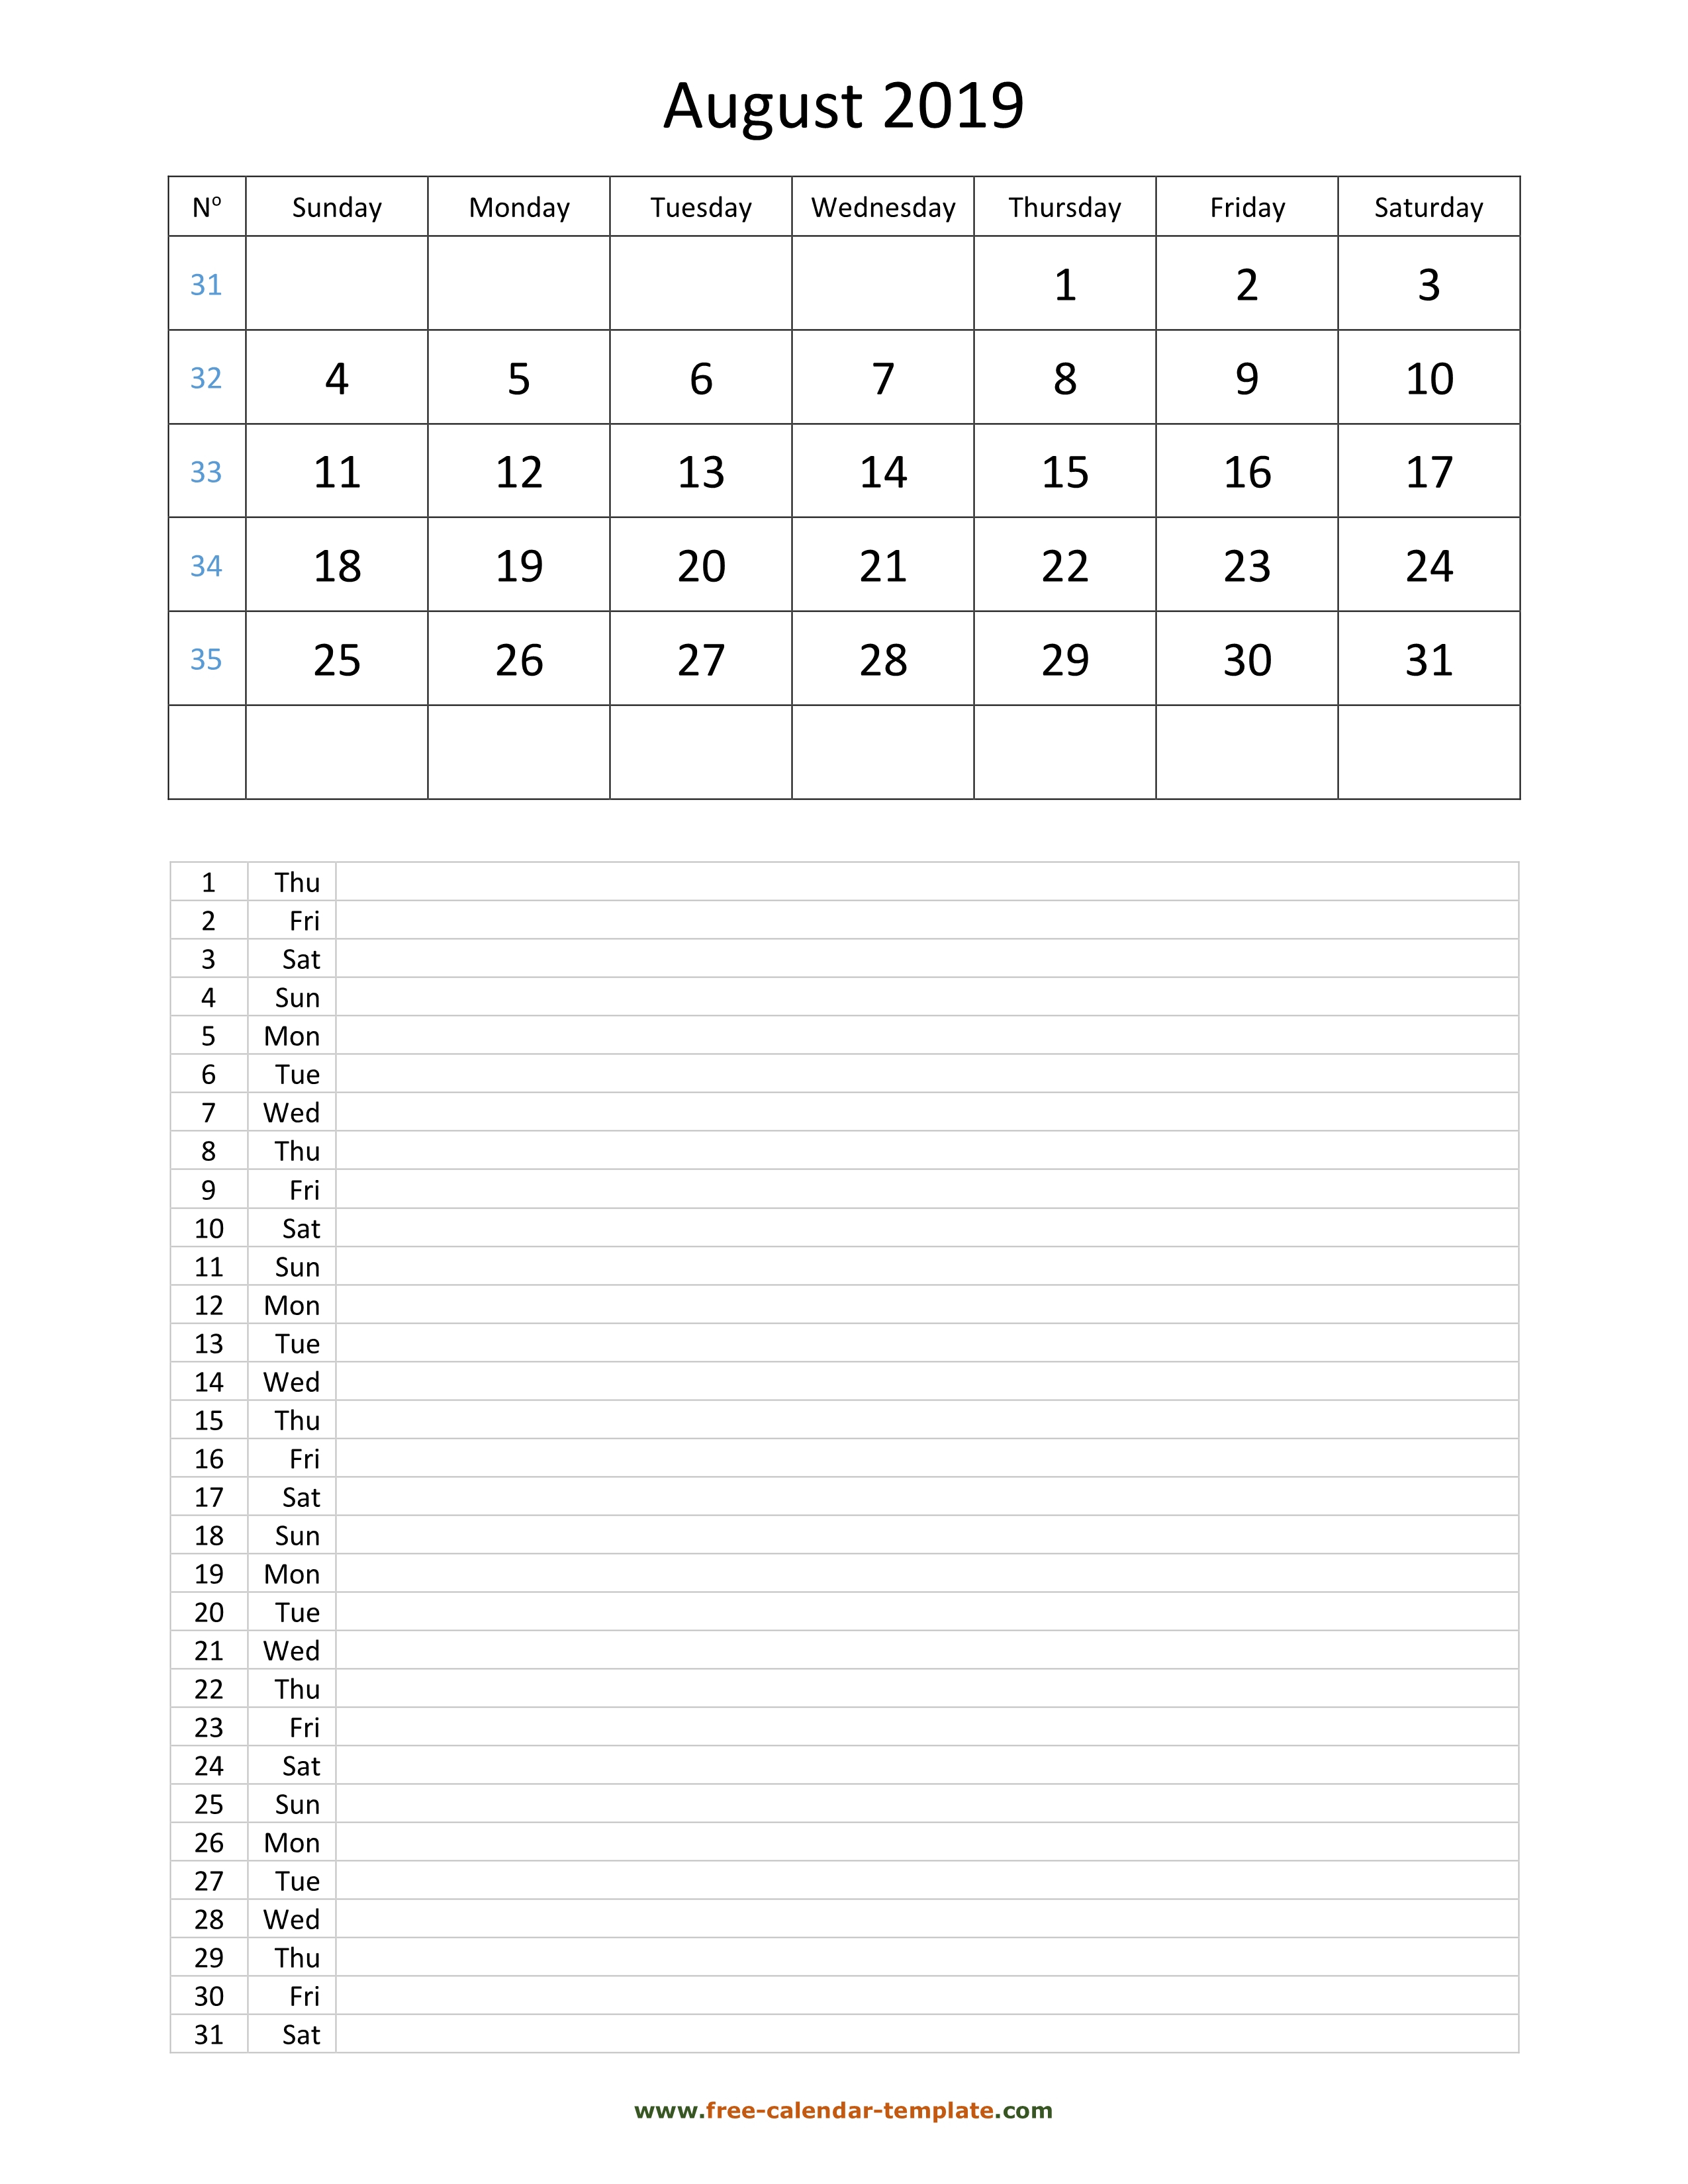 Printable 2019 August Calendar Grid Lines For Daily Notes